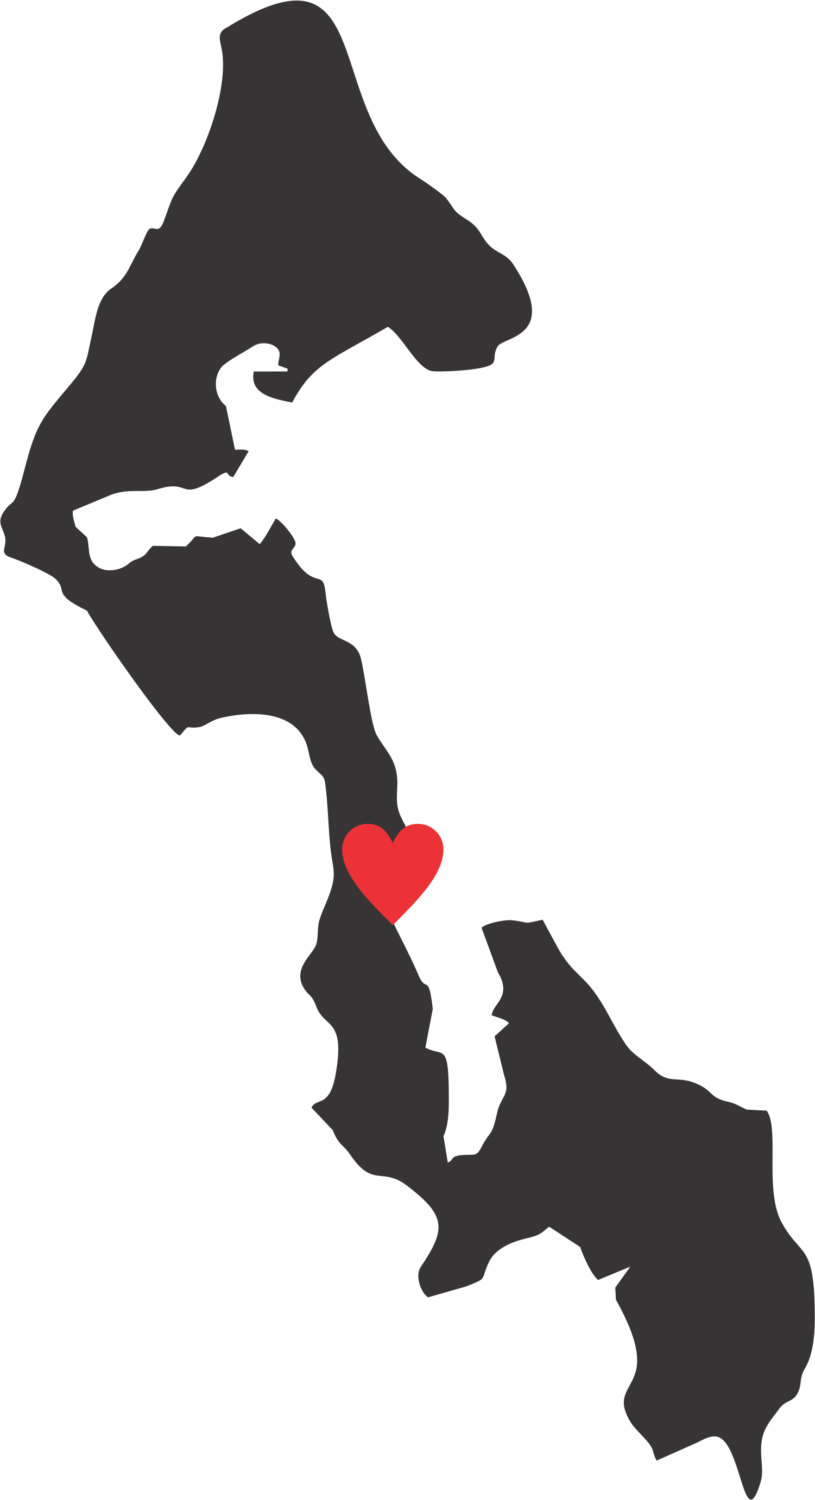 Whidbey Island Decal with Heart by Stickernaut on Etsy.